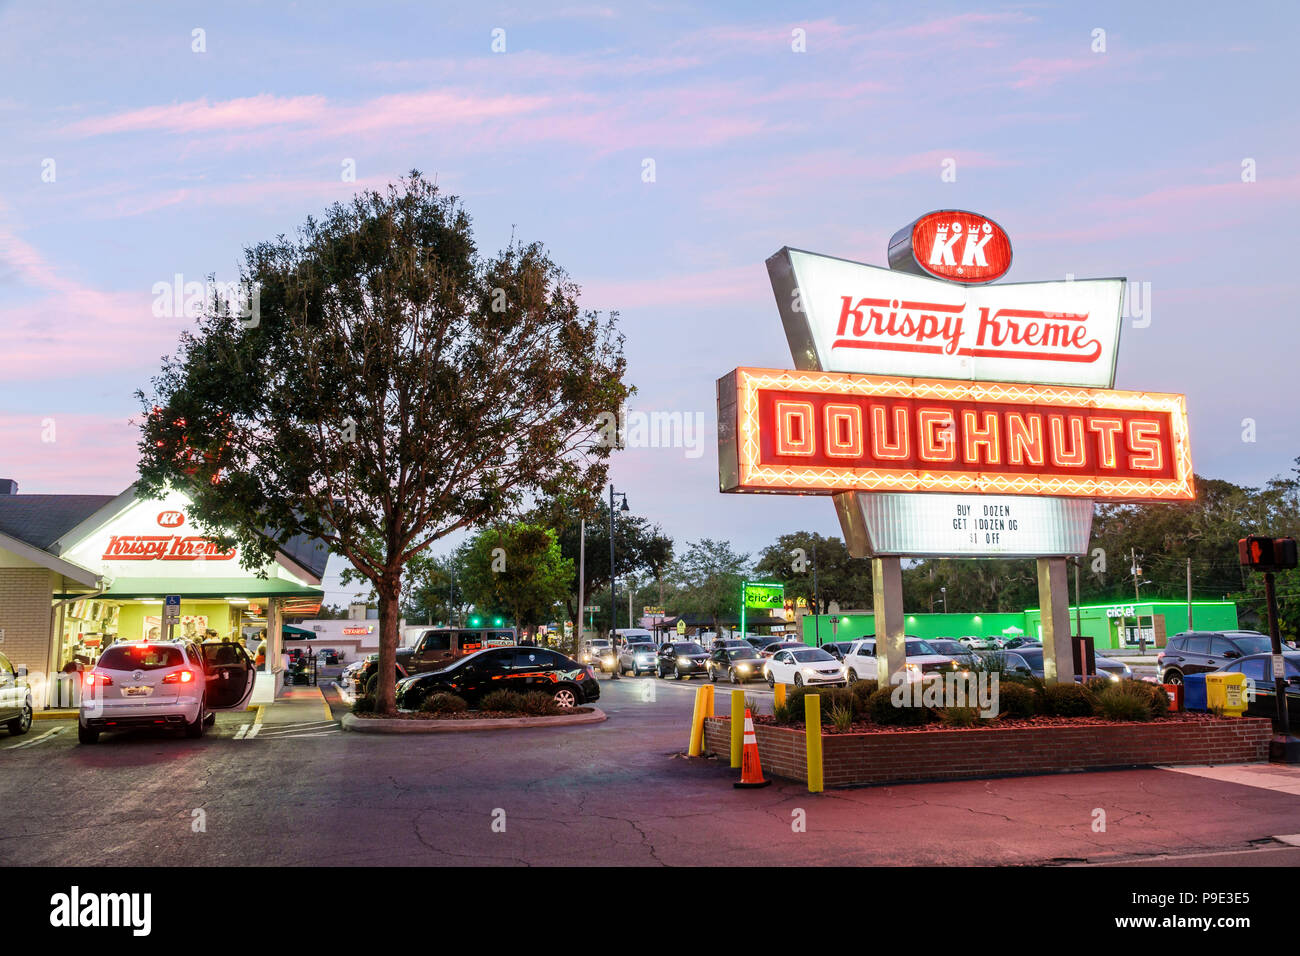 Florida Gainesville Krispy Kreme Doughnuts neon sign night nightlife coffeehouse chain twilight dusk parking lot cars - Stock Image